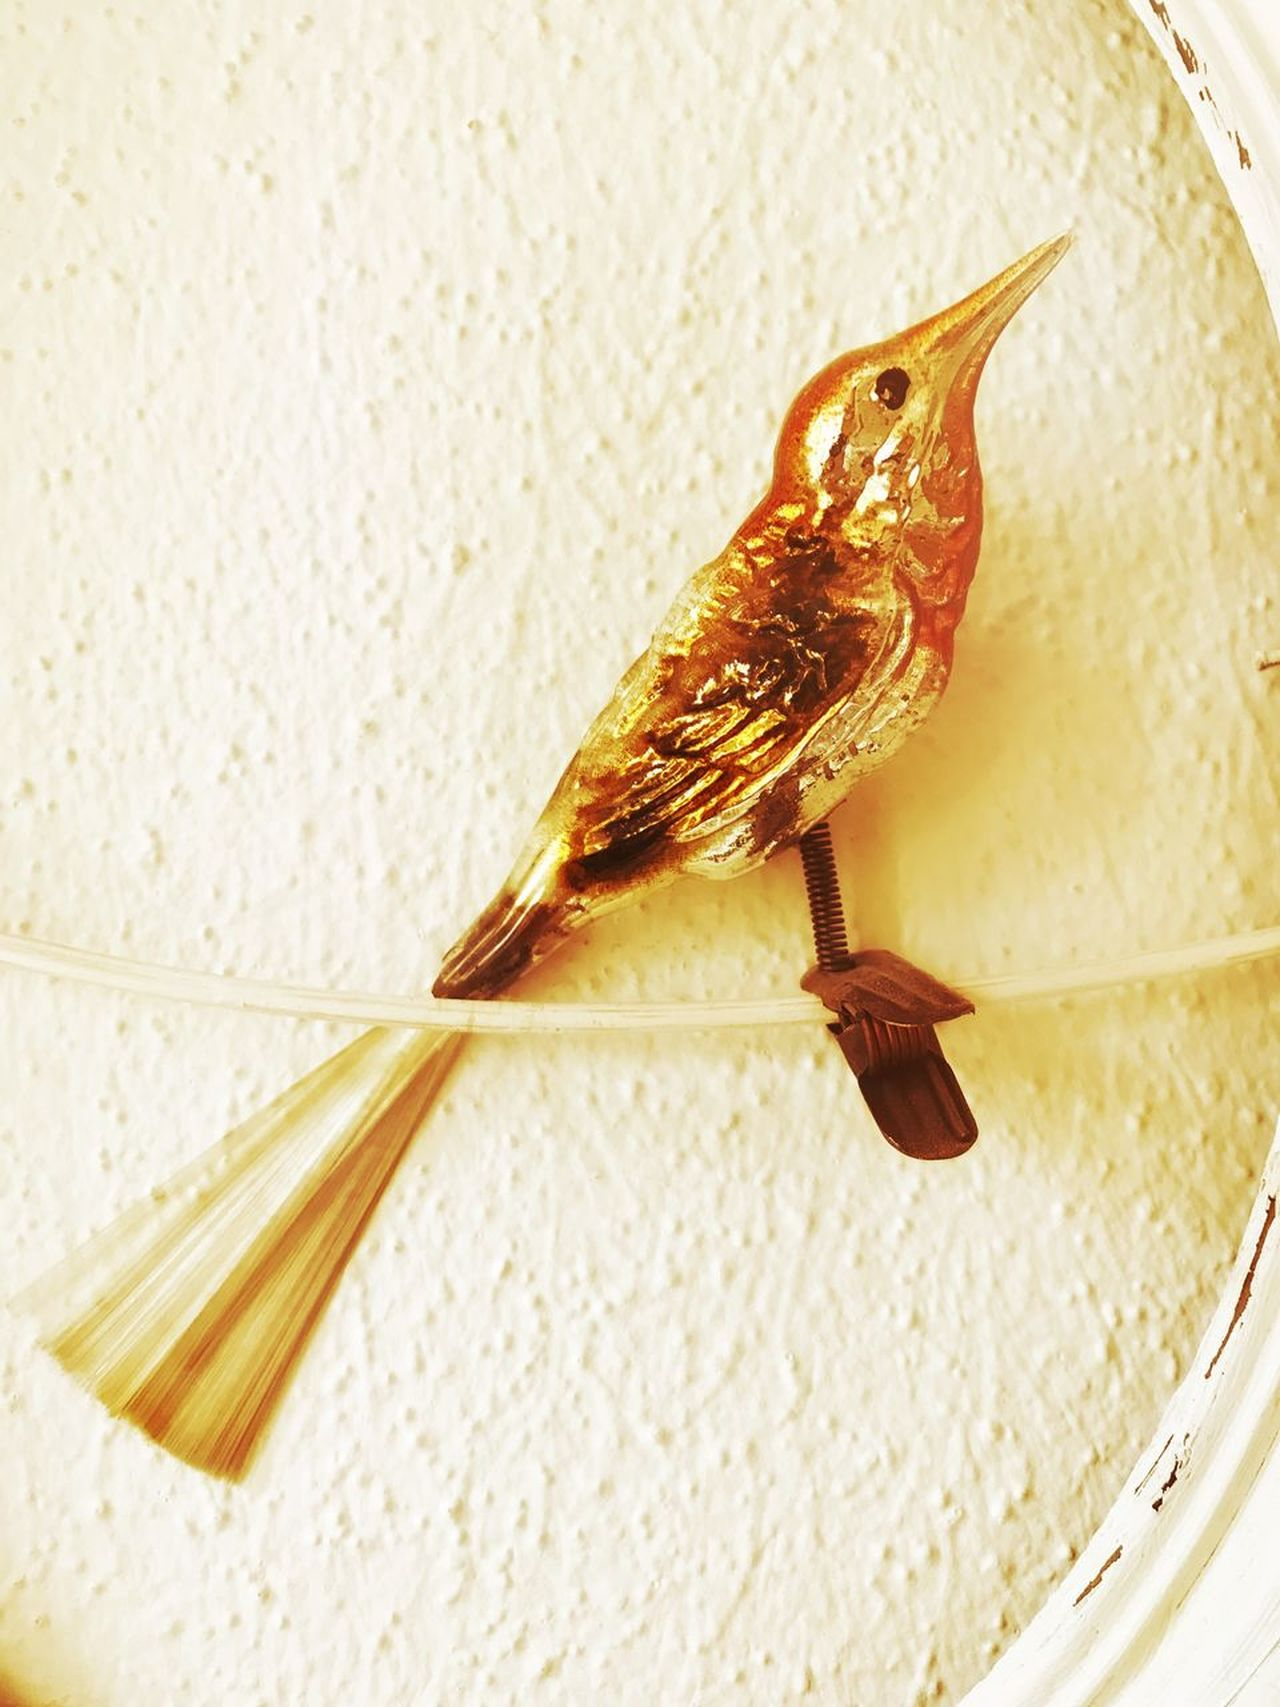 One Animal Animal Themes No People Bird Vintage Old Christmas Ornaments Made Of Glass Old Times Granny Indoors itional] indoorsSparrowwClose-uppPerchinggFooddDayyNaturee